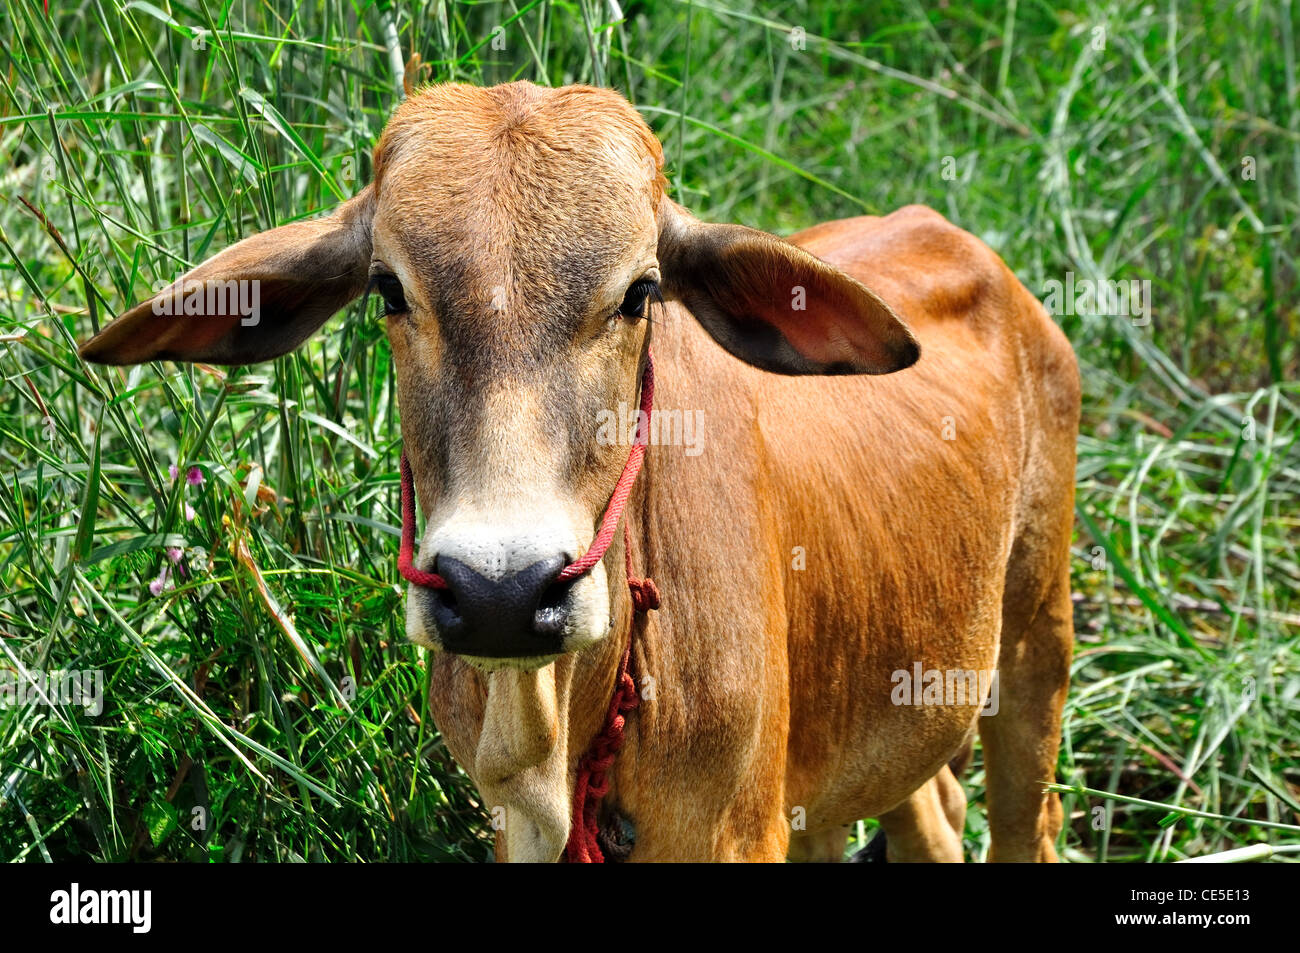 Ox in field - Stock Image